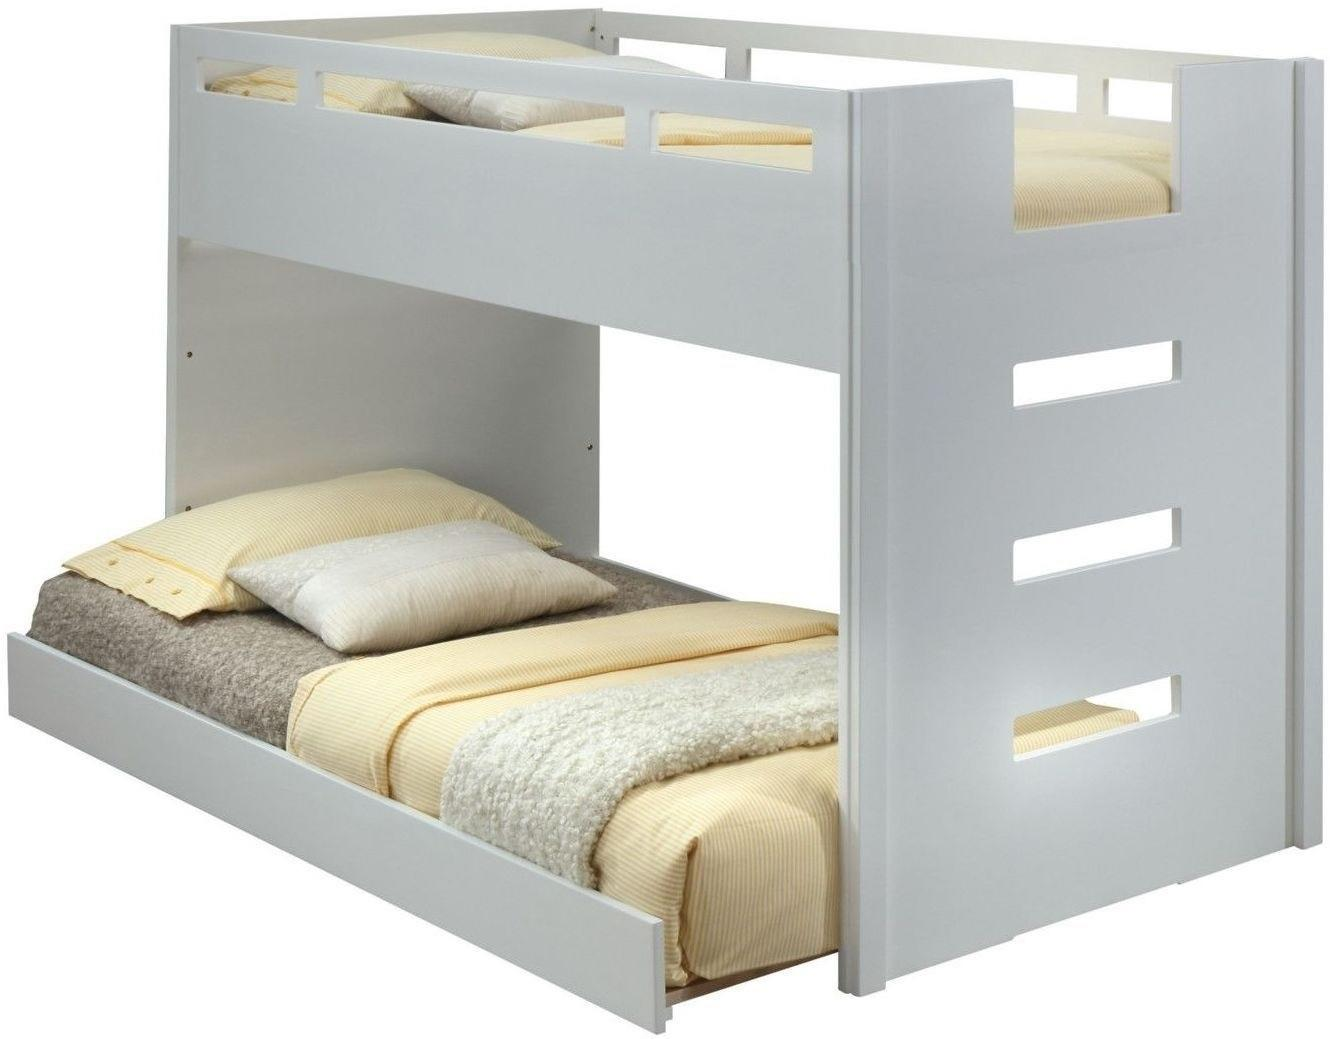 Acme 37470 Deltana White Wood Finish Twin Loft Bed With Trundle